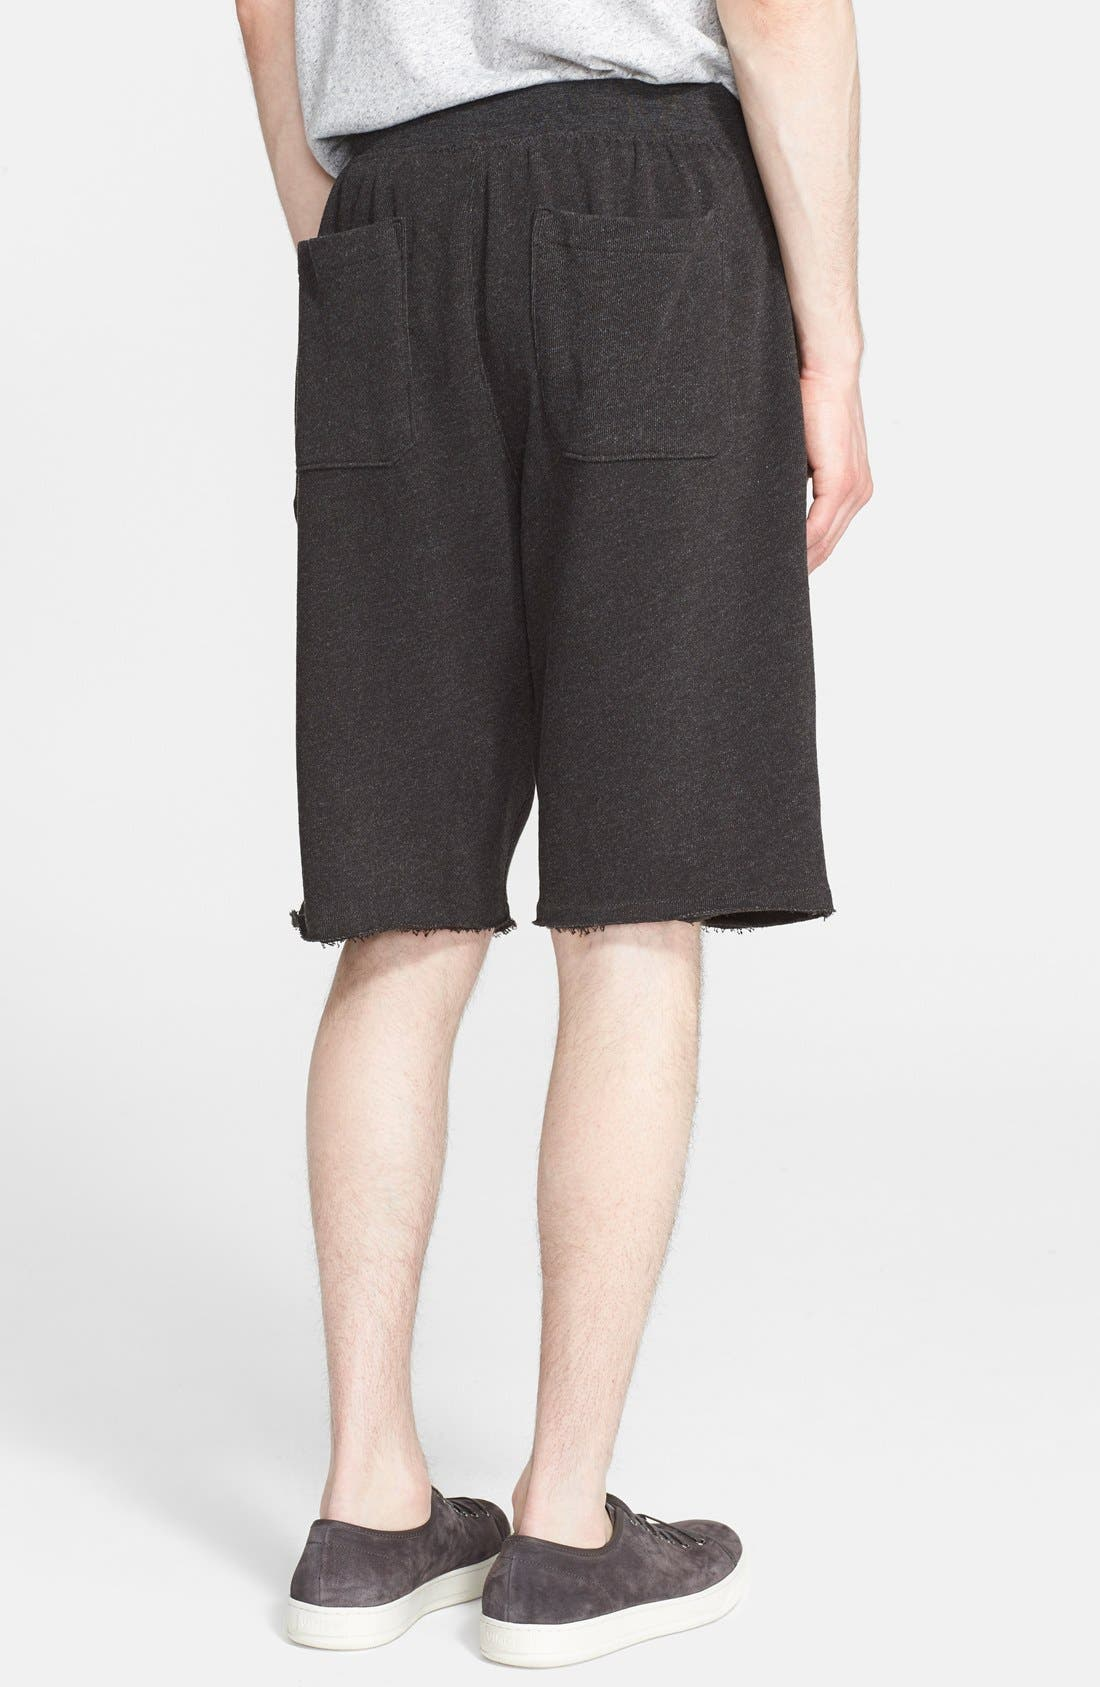 Cutoff Sweat Shorts,                             Alternate thumbnail 2, color,                             021